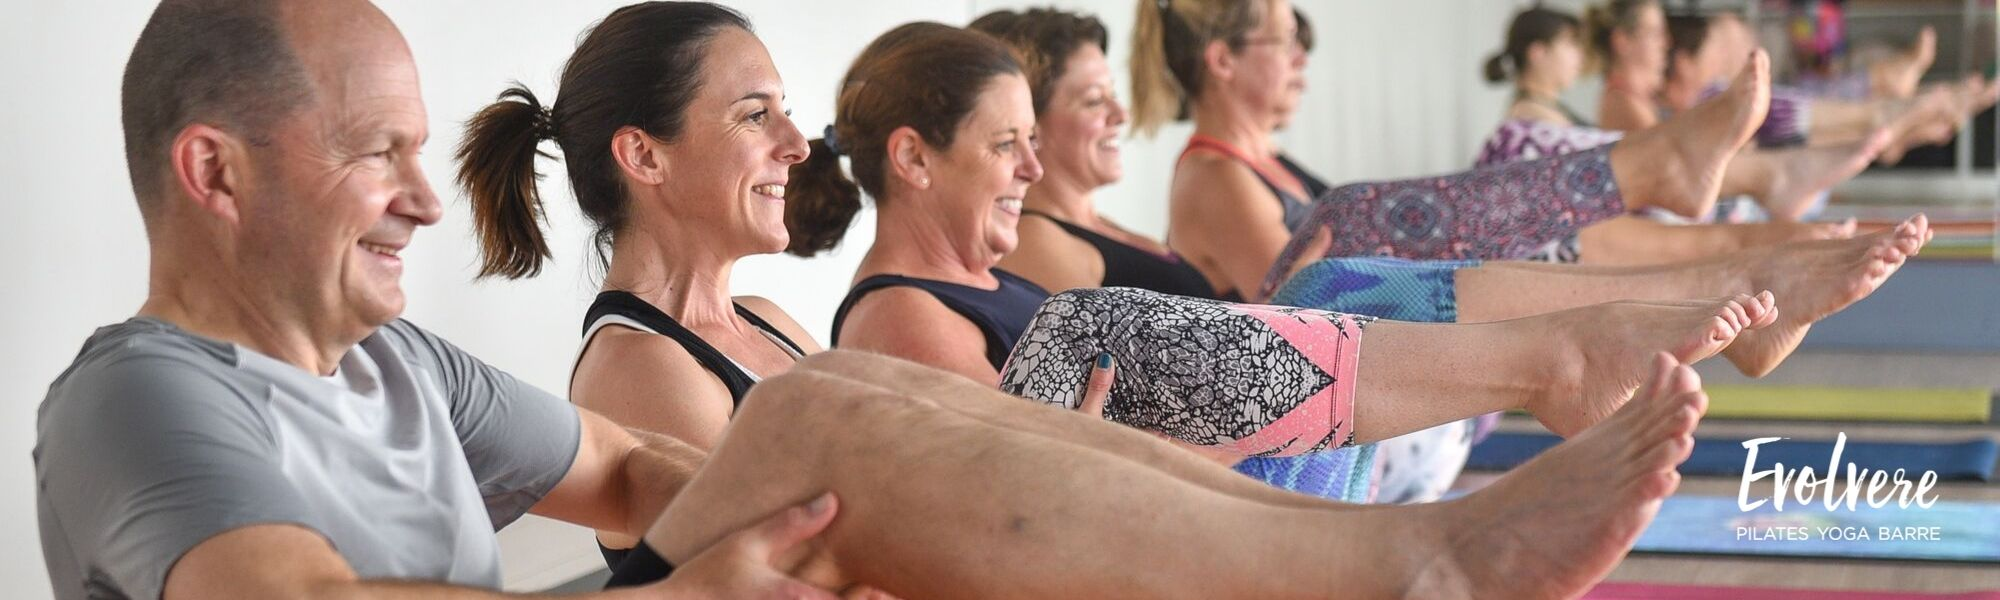 best Barre classes in Lane Cove at Evolvere Sydney